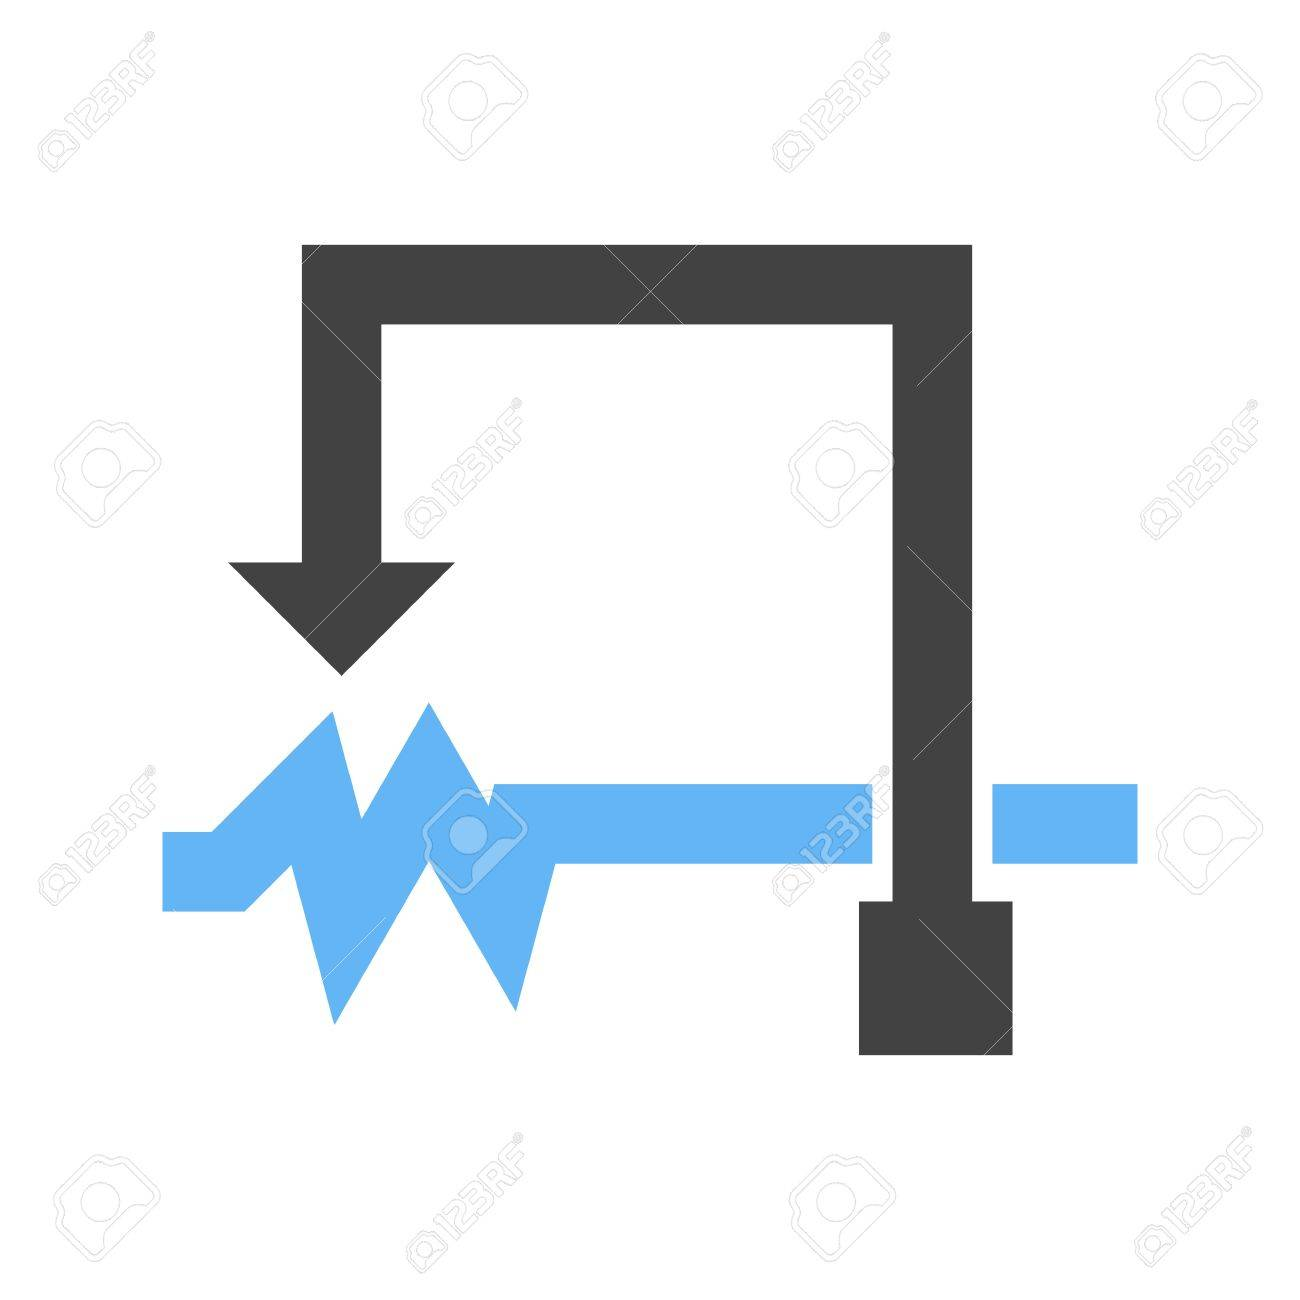 Famous Symbol Of Potentiometer Festooning Microsoft Value Chain Circuit Diagram Rheostat Fine For Images Simple Wiring 53300463 Electronic Icon Vector Image